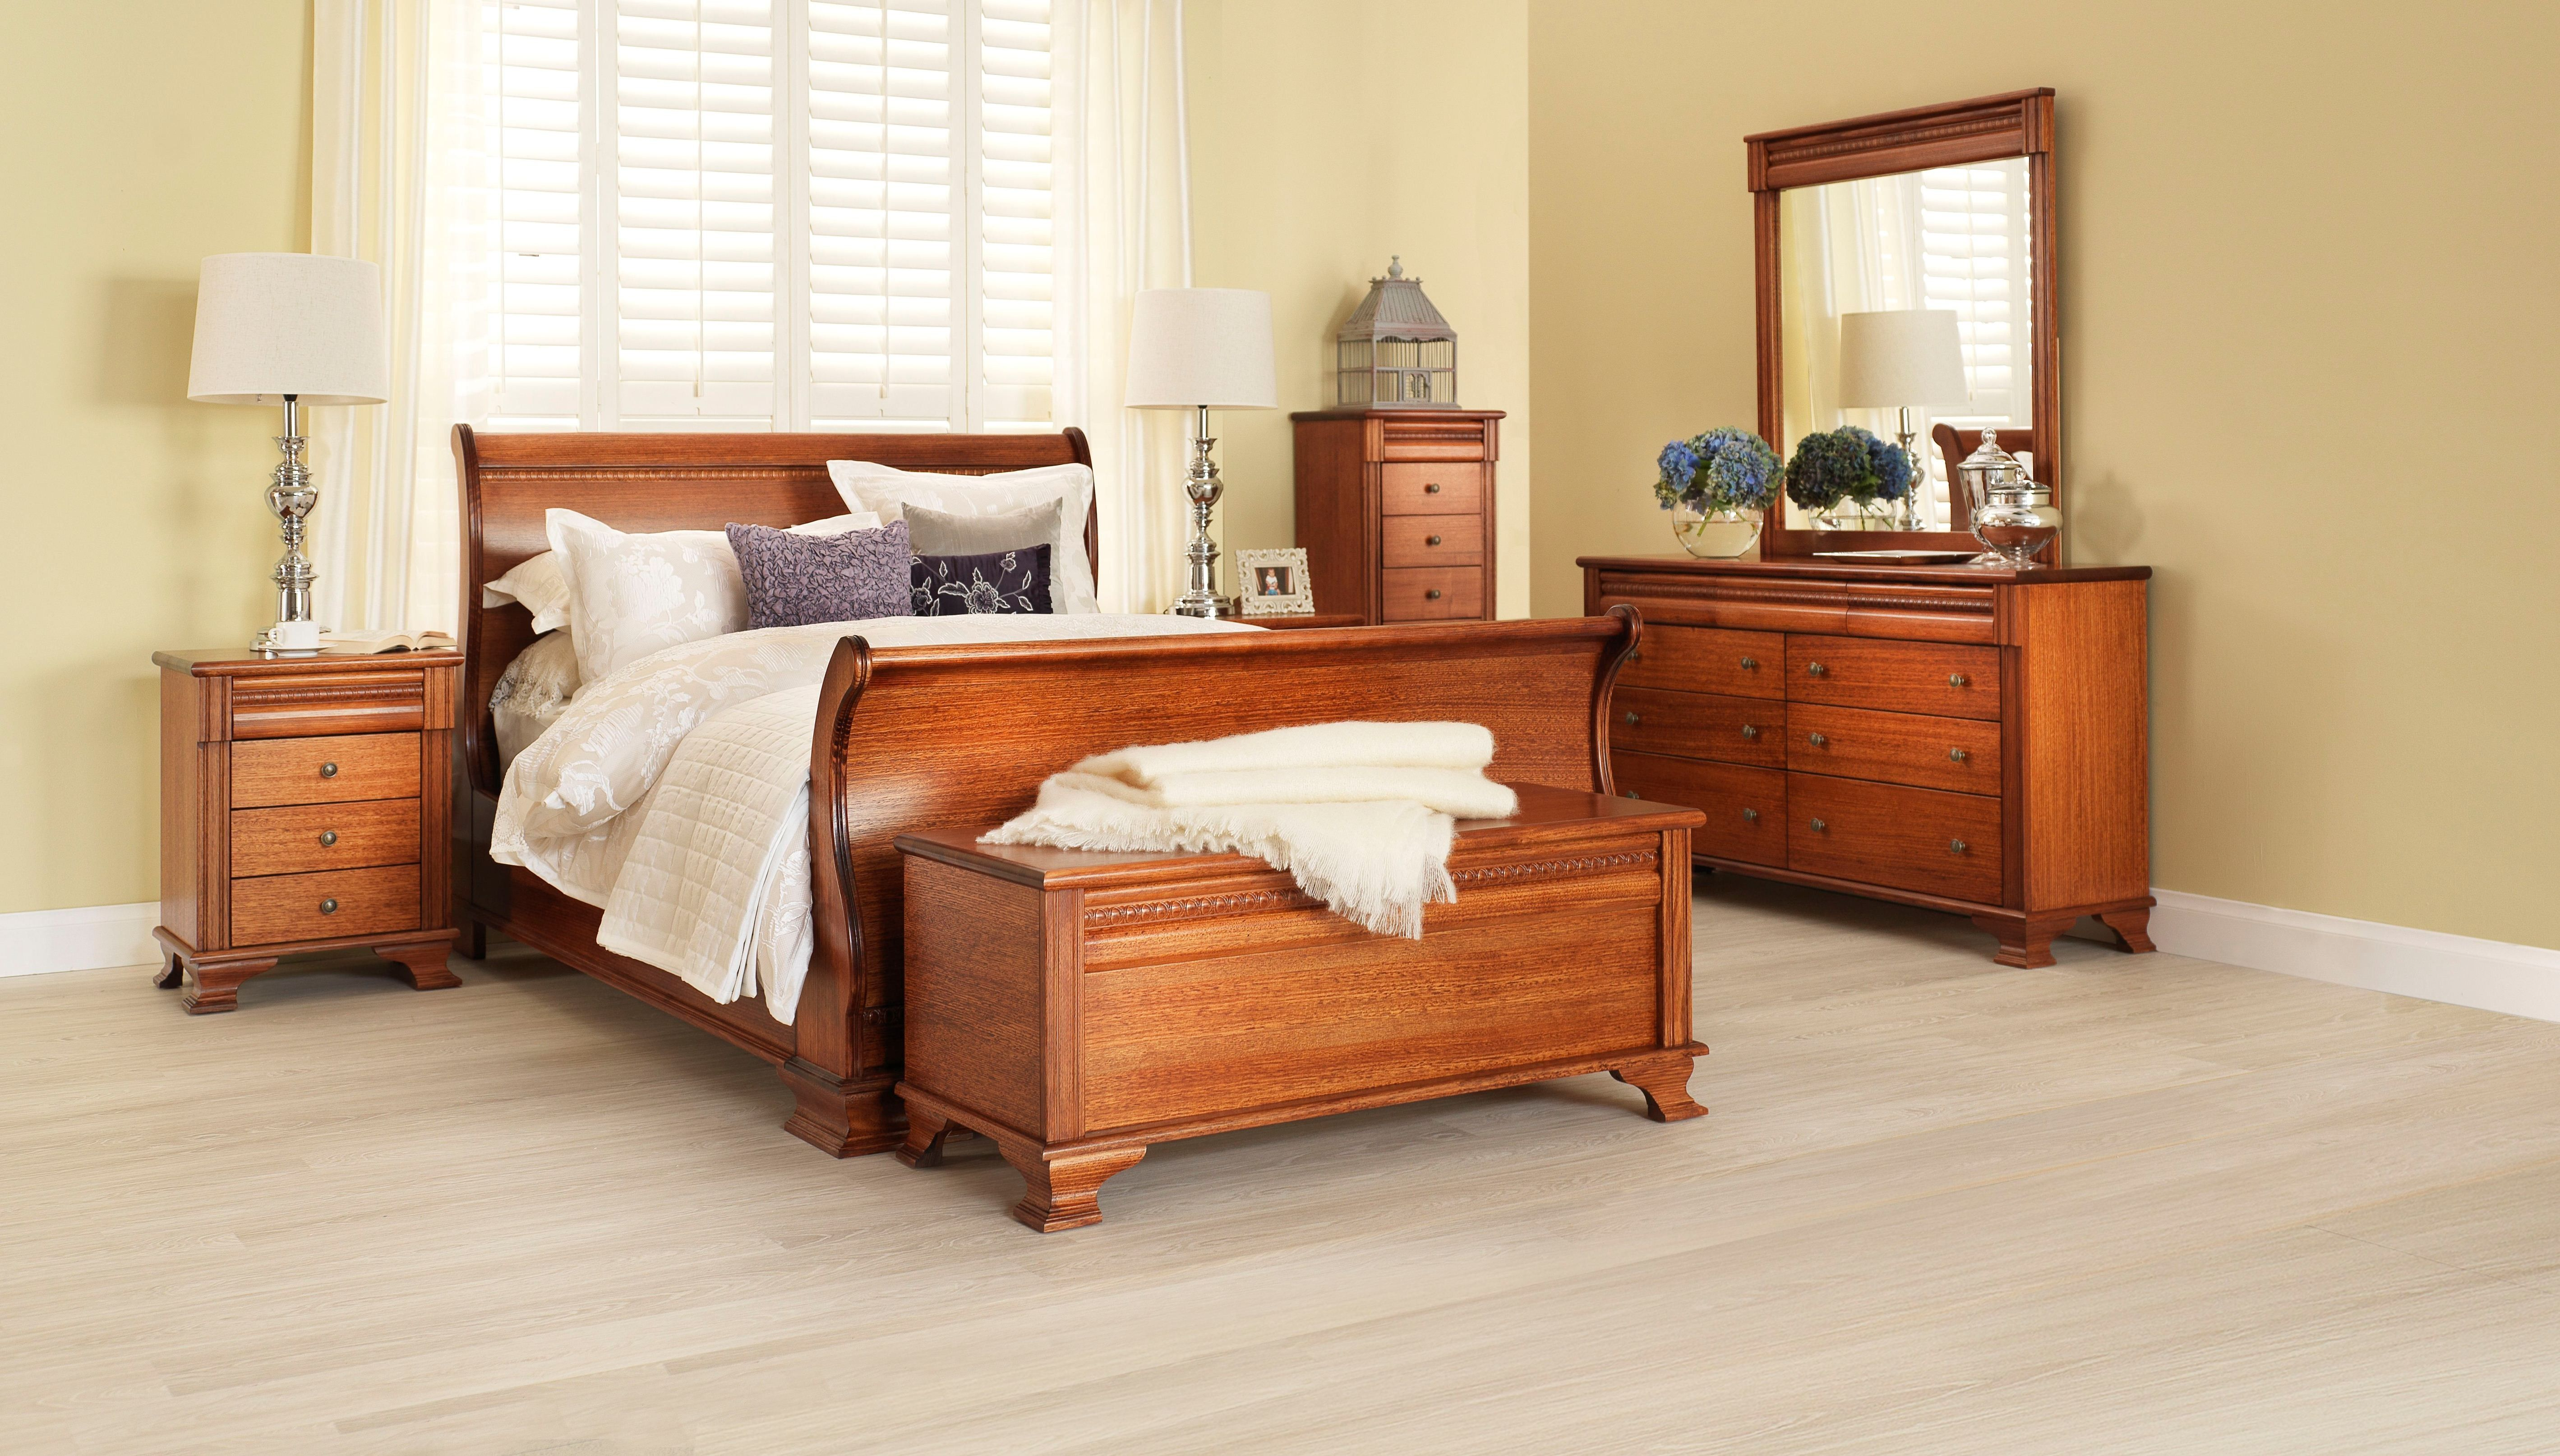 Monet Classic Light Wood Grain Bedroom Furniture Suite With Neutral Toned  Linen And Décor